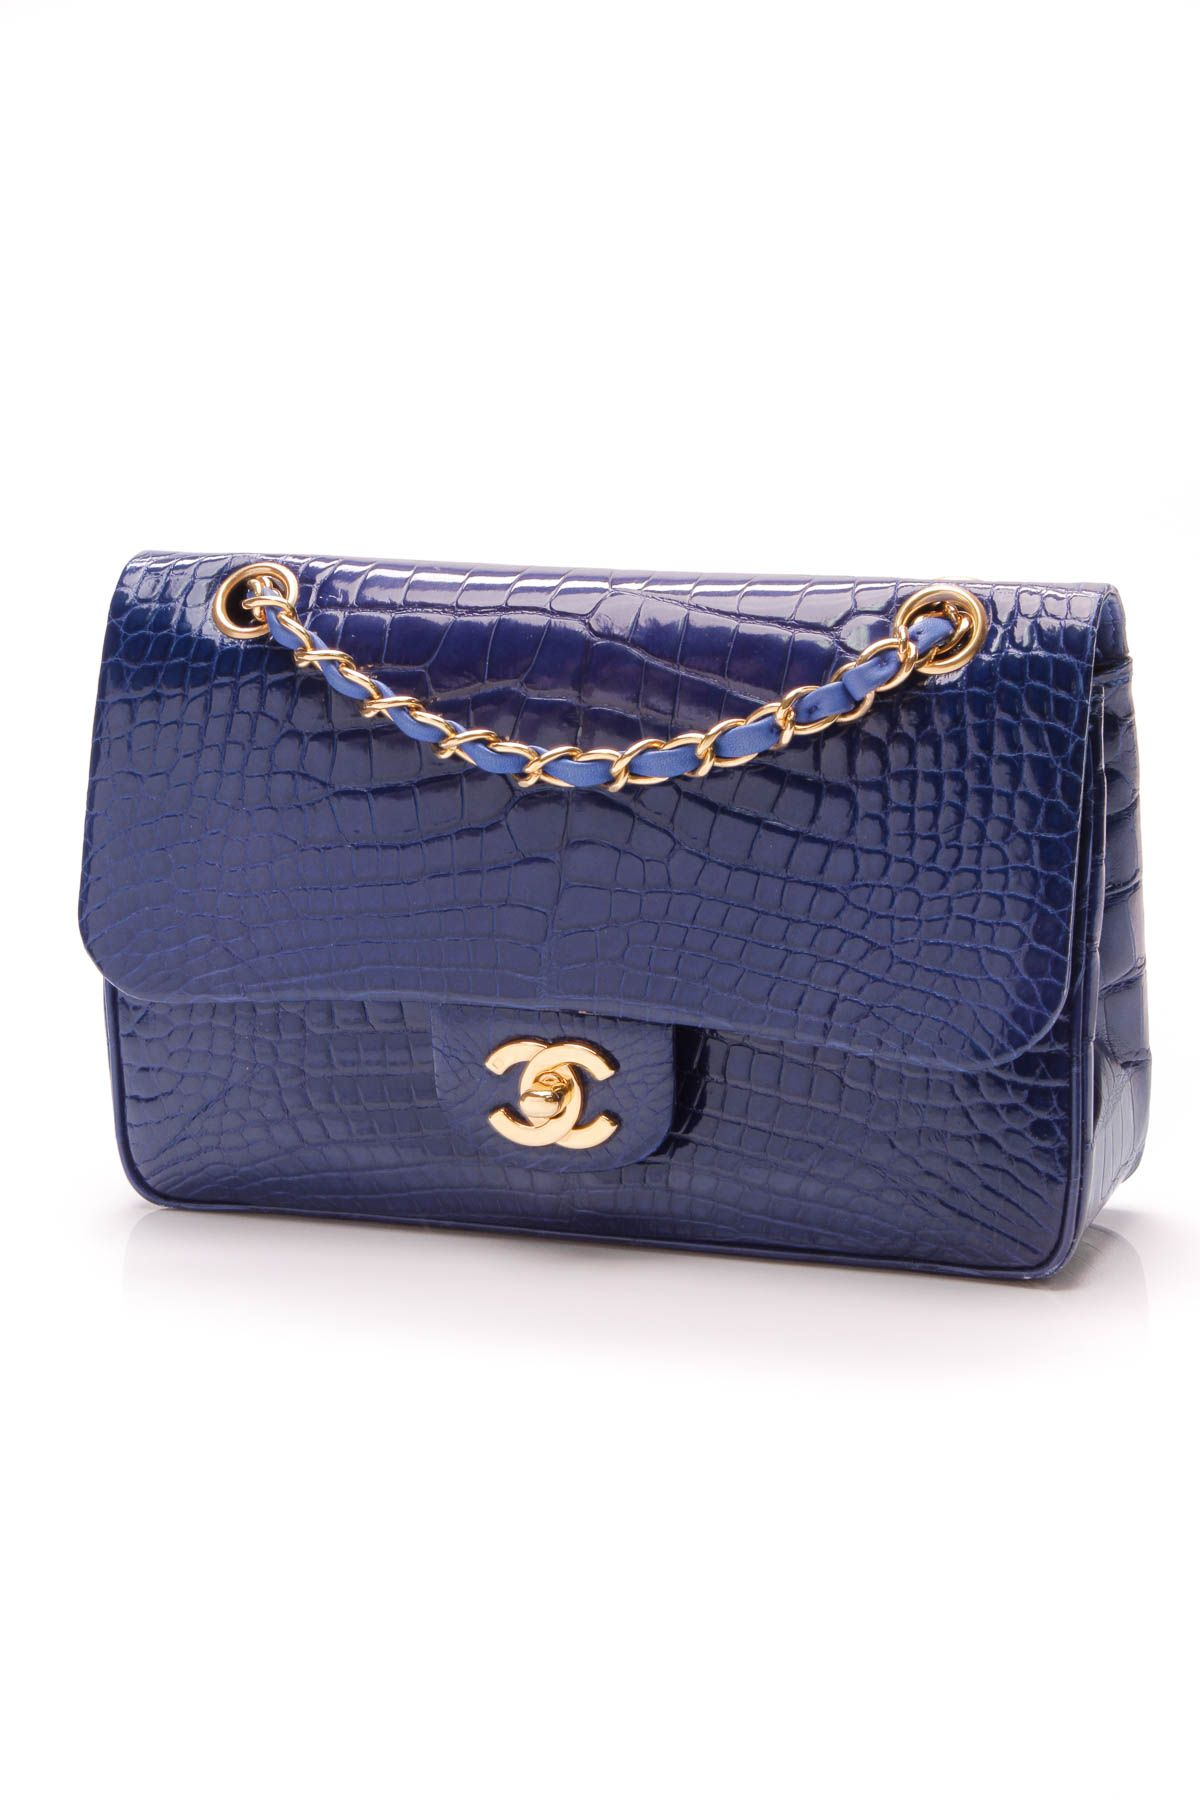 8d5e571bb96a7d Chanel Classic Double Flap Bag - Small Blue Alligator | On The ...